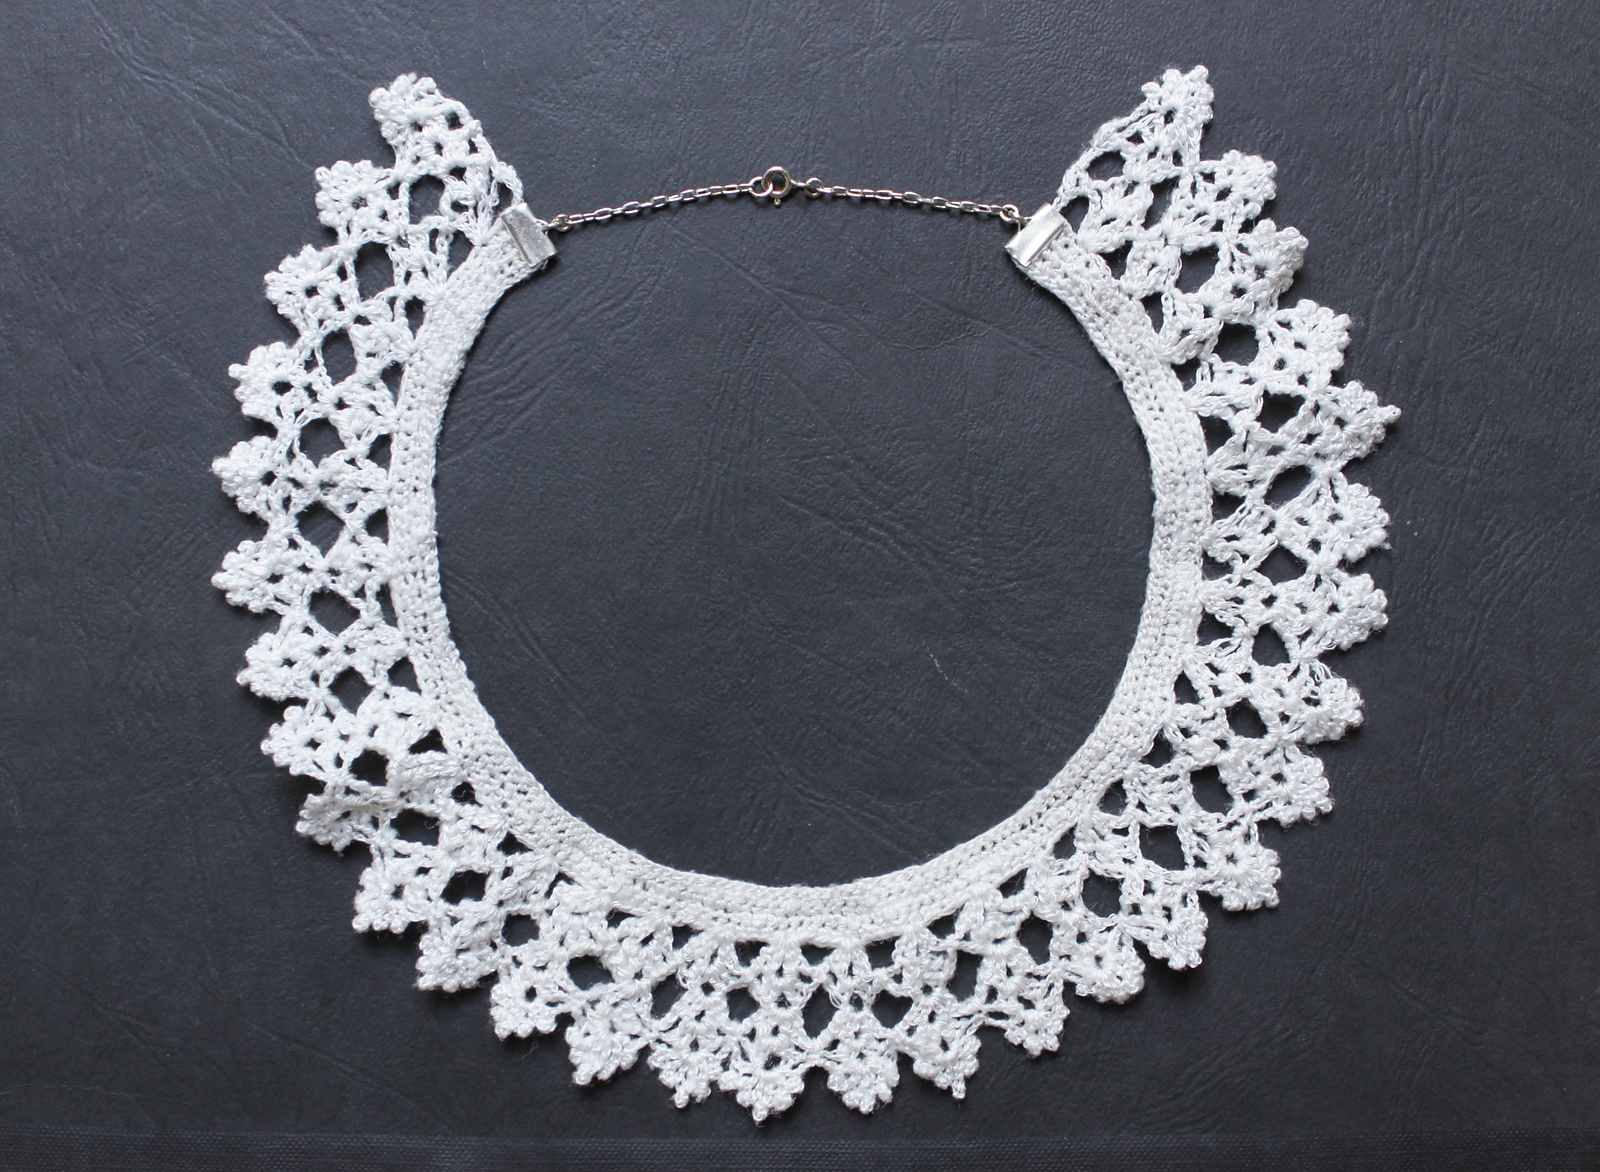 10 Crochet Lace Collar Patterns